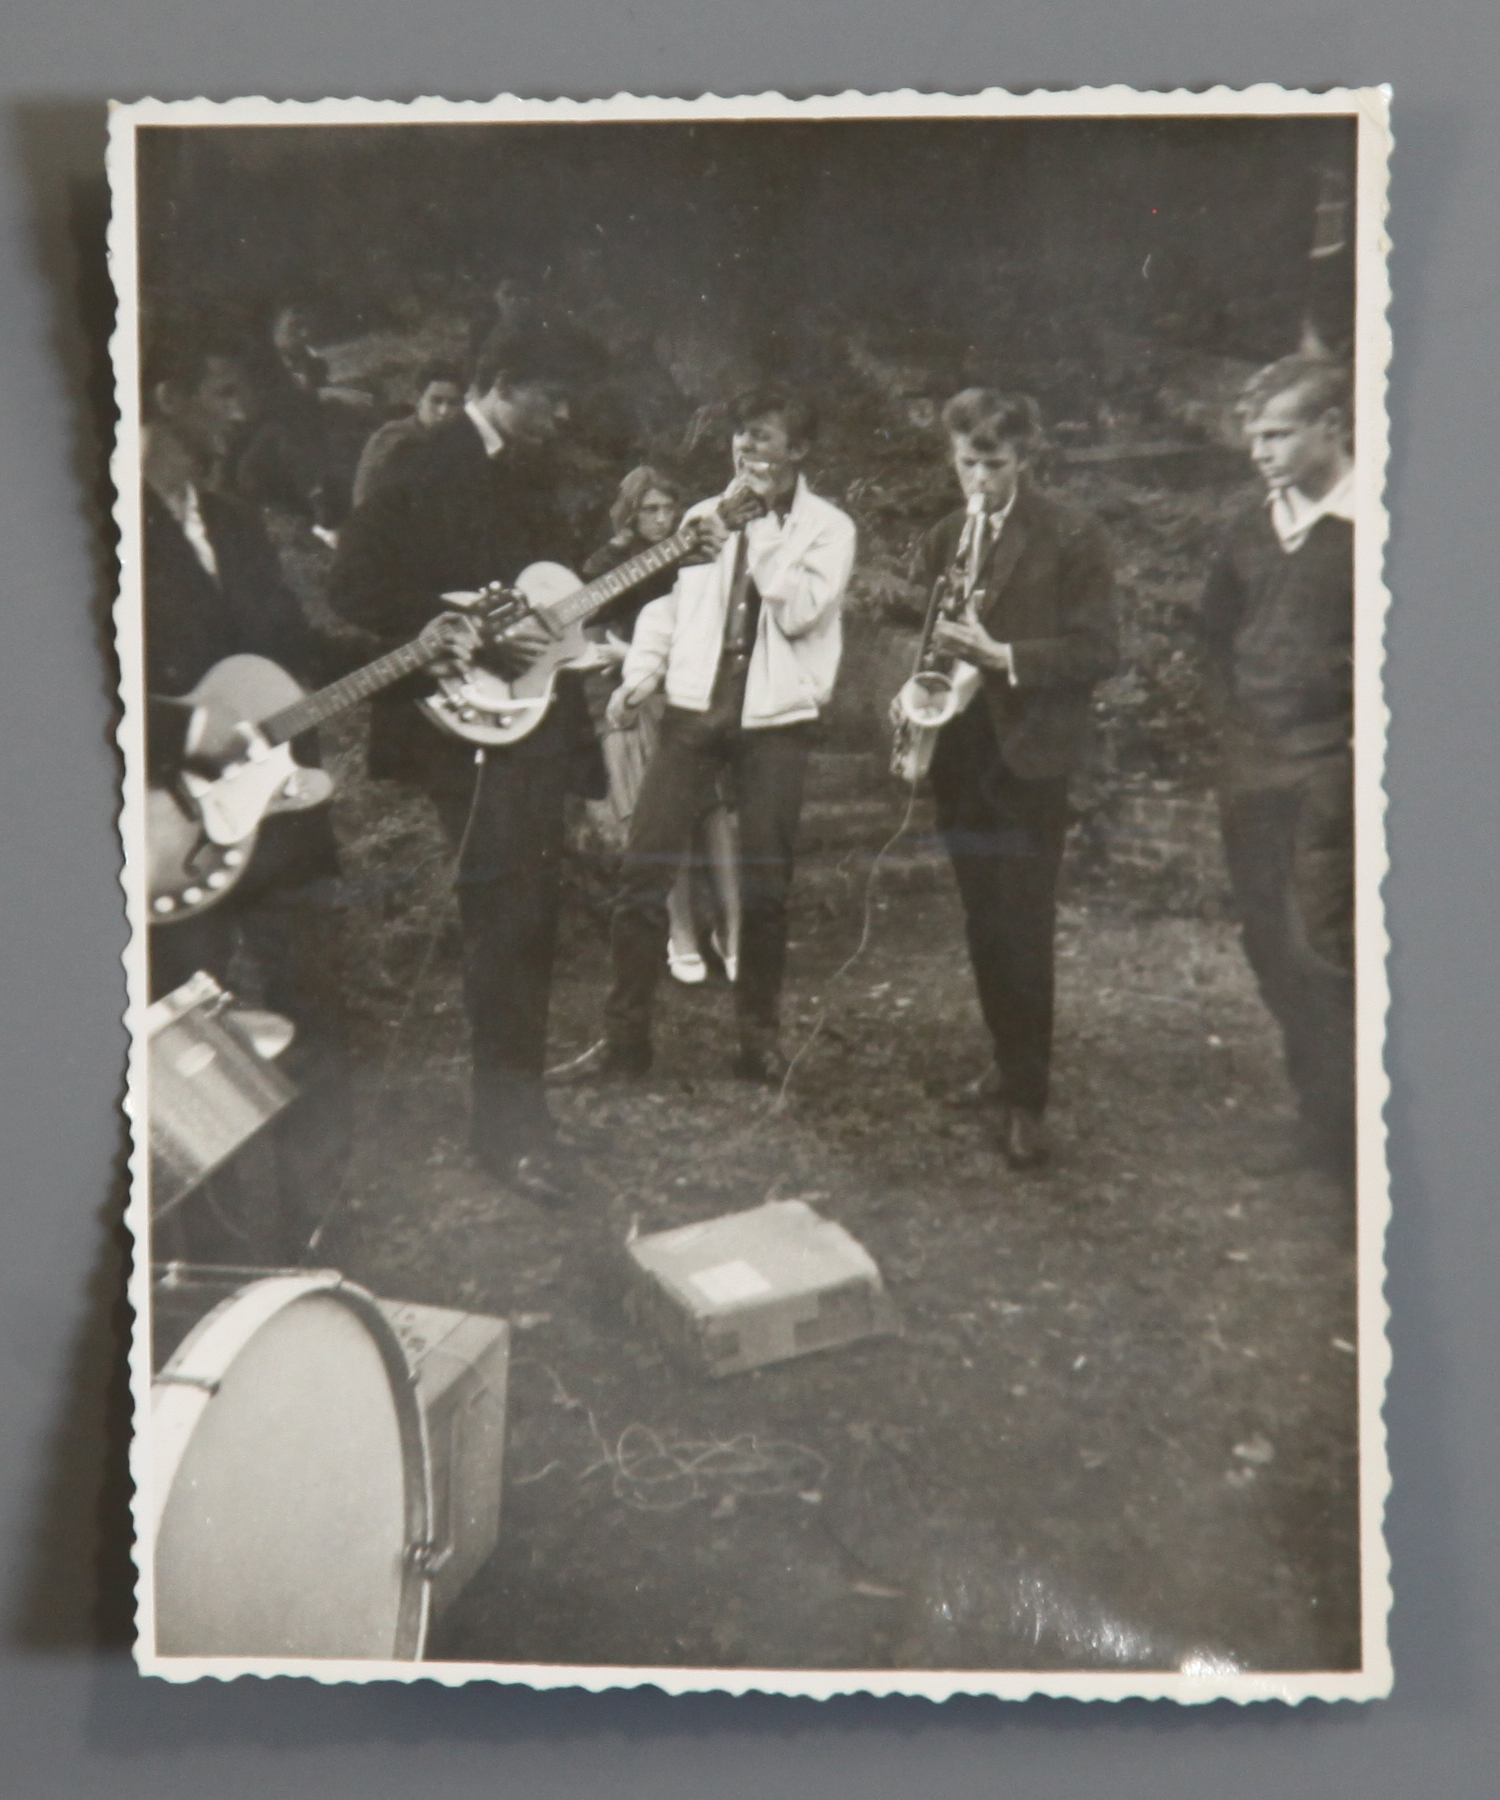 Lot 61 - David Bowie unpublished photograph of his first band, The Konrads with Himself, aka Davy Jones